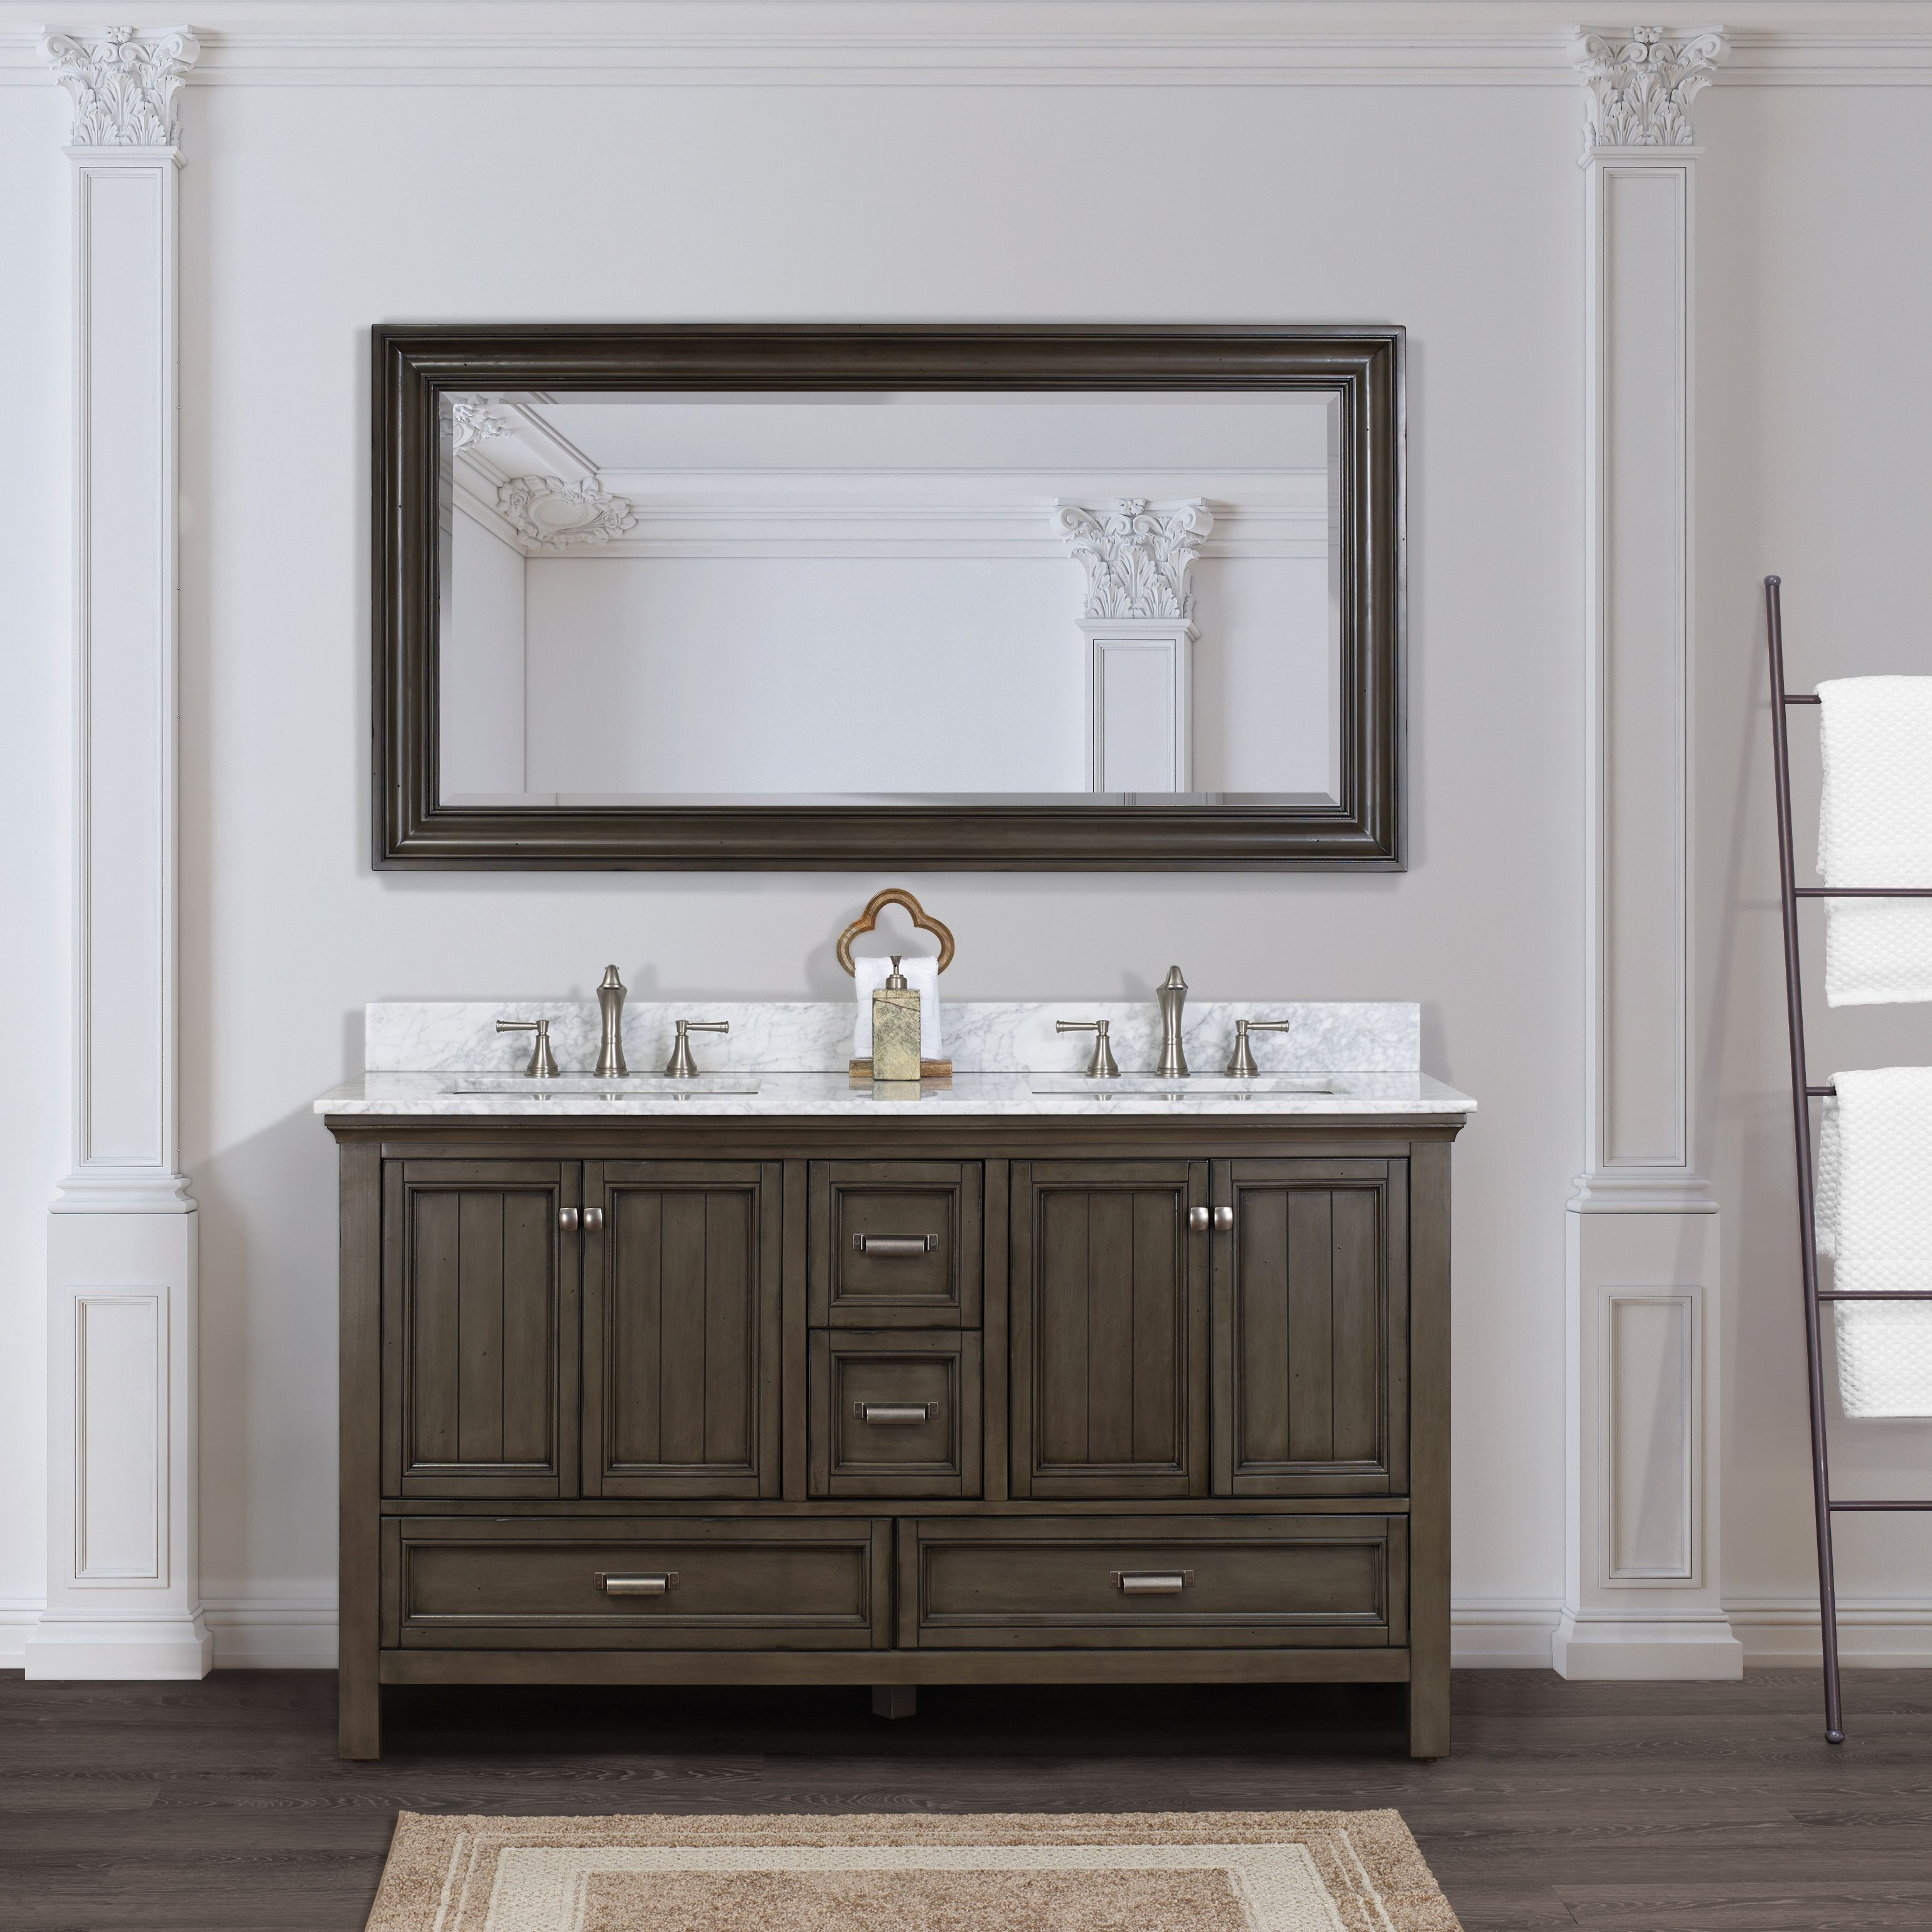 Foremost 60 Inches Free Standing Brantley Vanity Only Distressed Grey Bagv6022d With Images Double Vanity Bathroom Bathroom Sink Vanity Bathroom Vanity